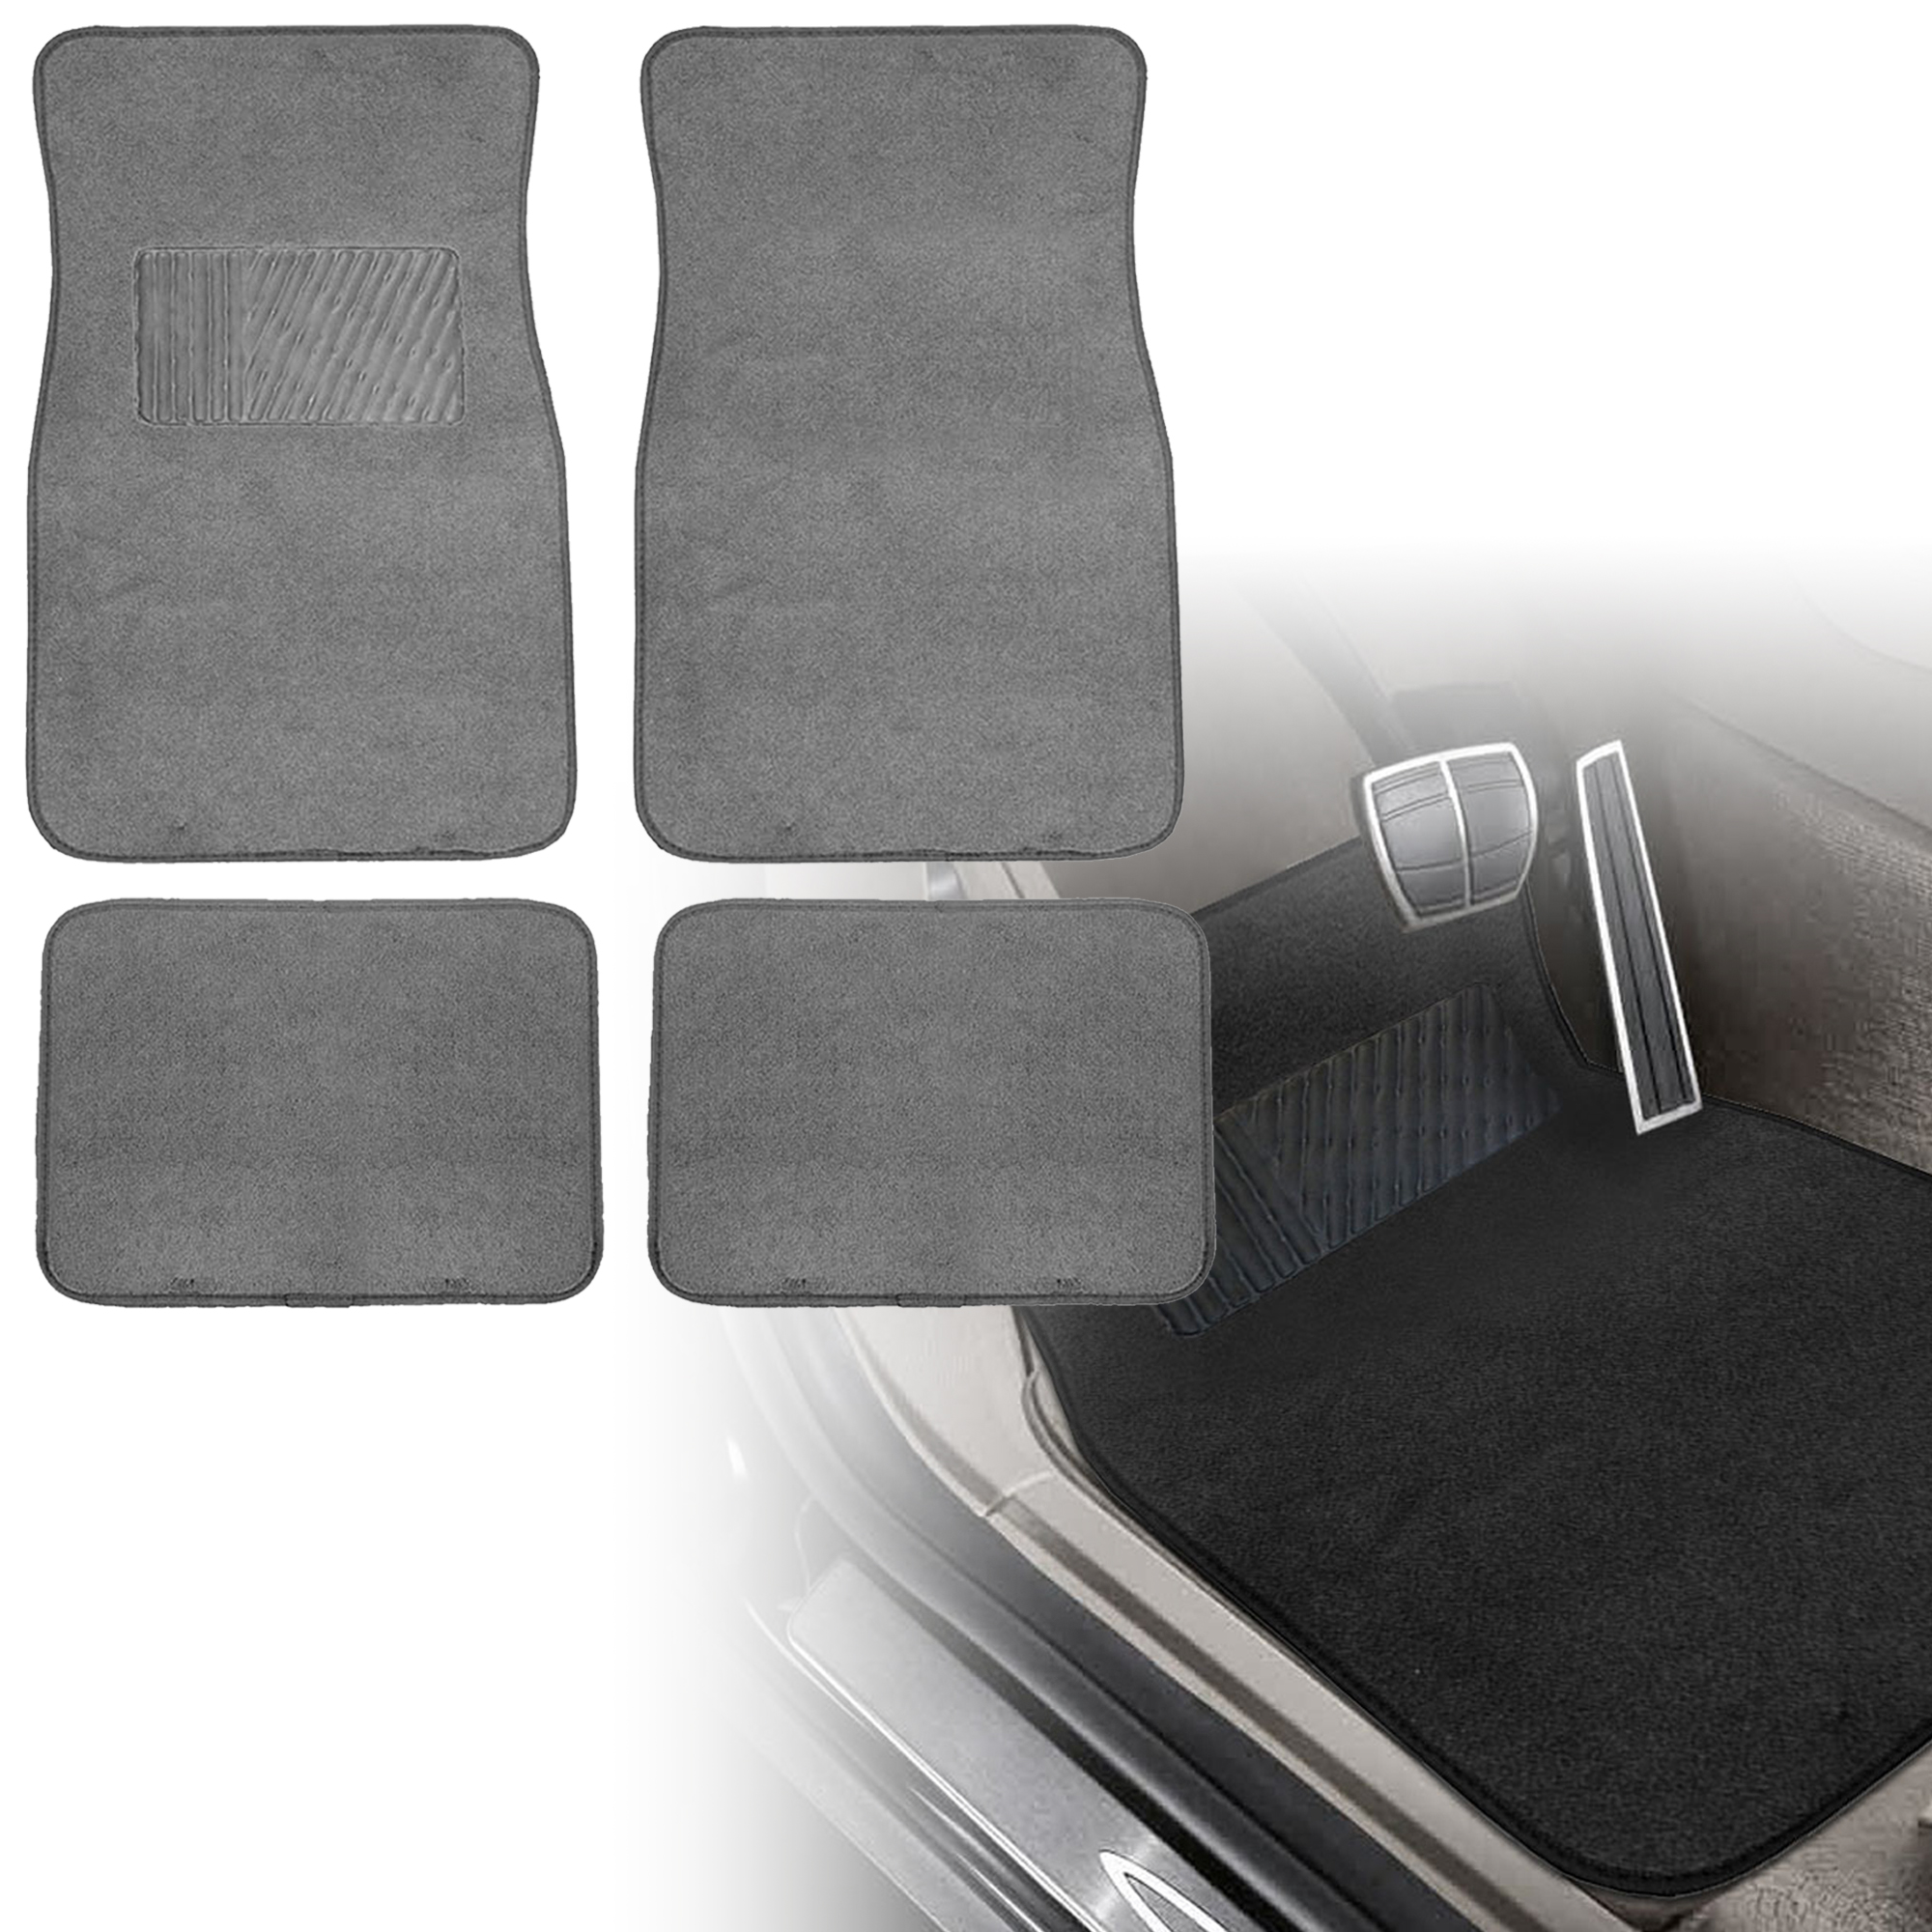 Black Amp Mint Car Seat Covers With Gray Carpet Floor Mats